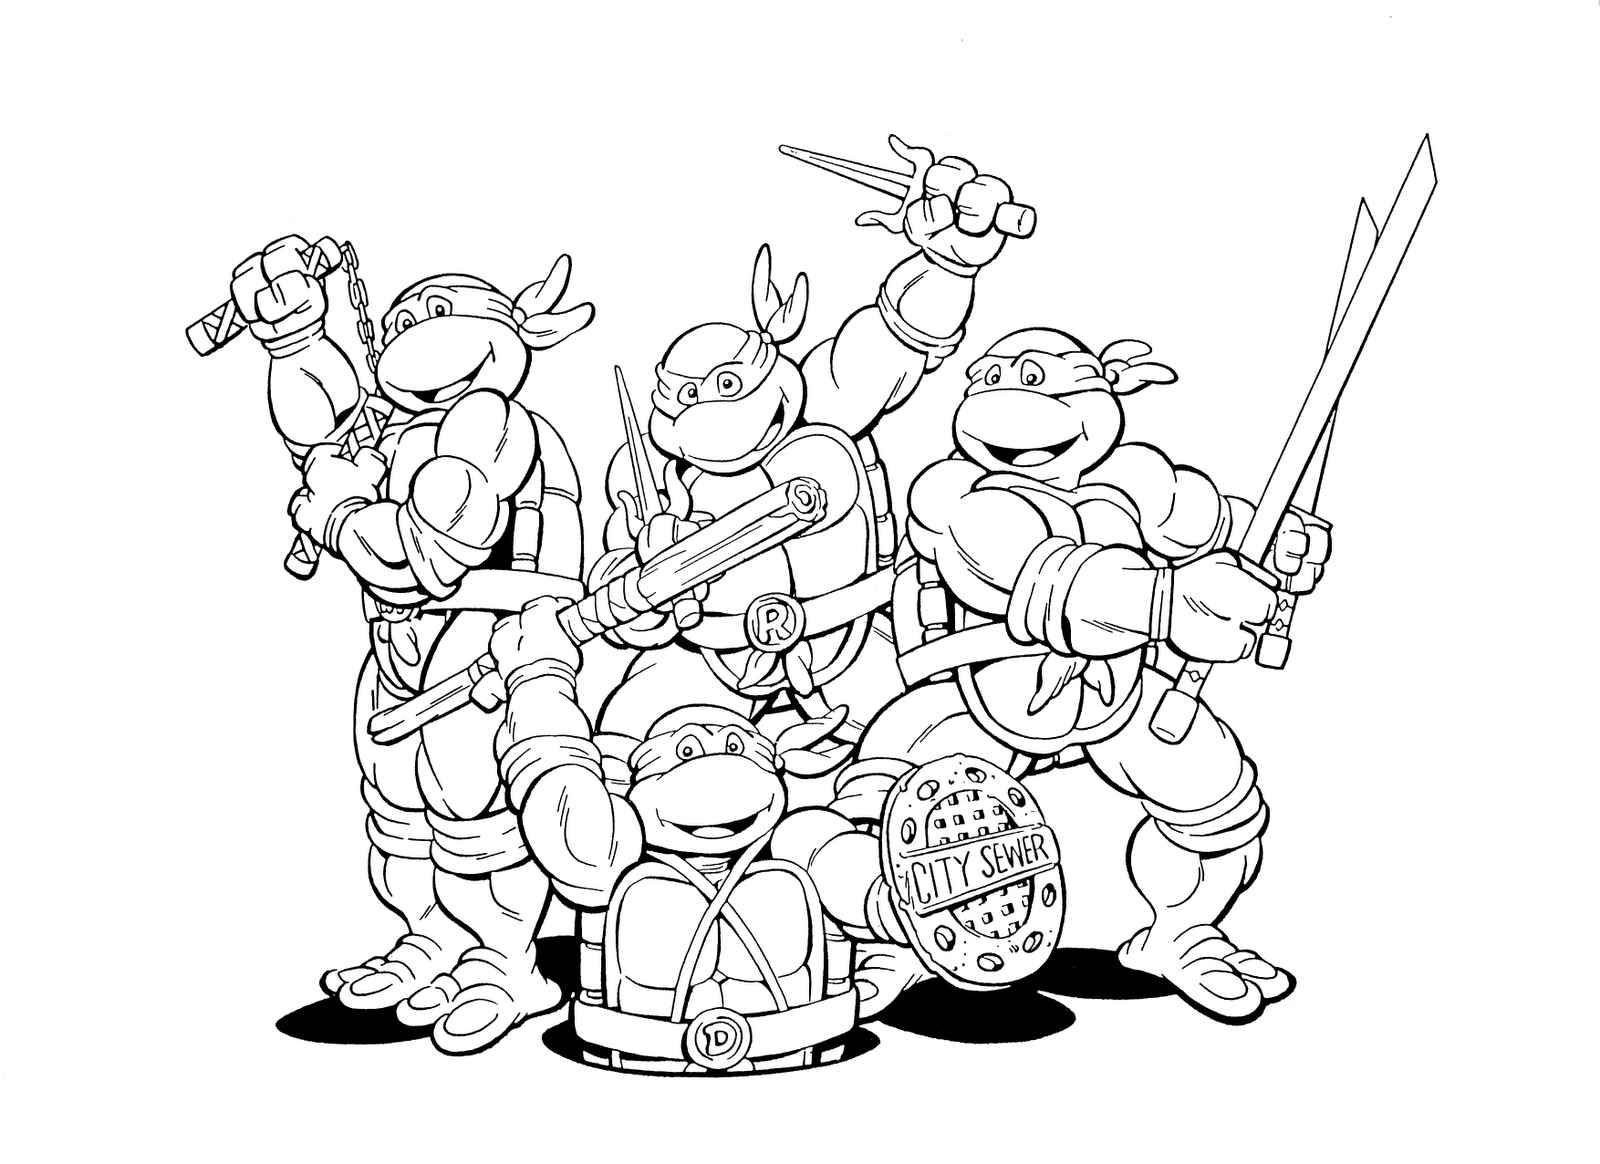 1600x1164 Coloring Pages For Boys Coloring Pages Coloring Pages Boy Image